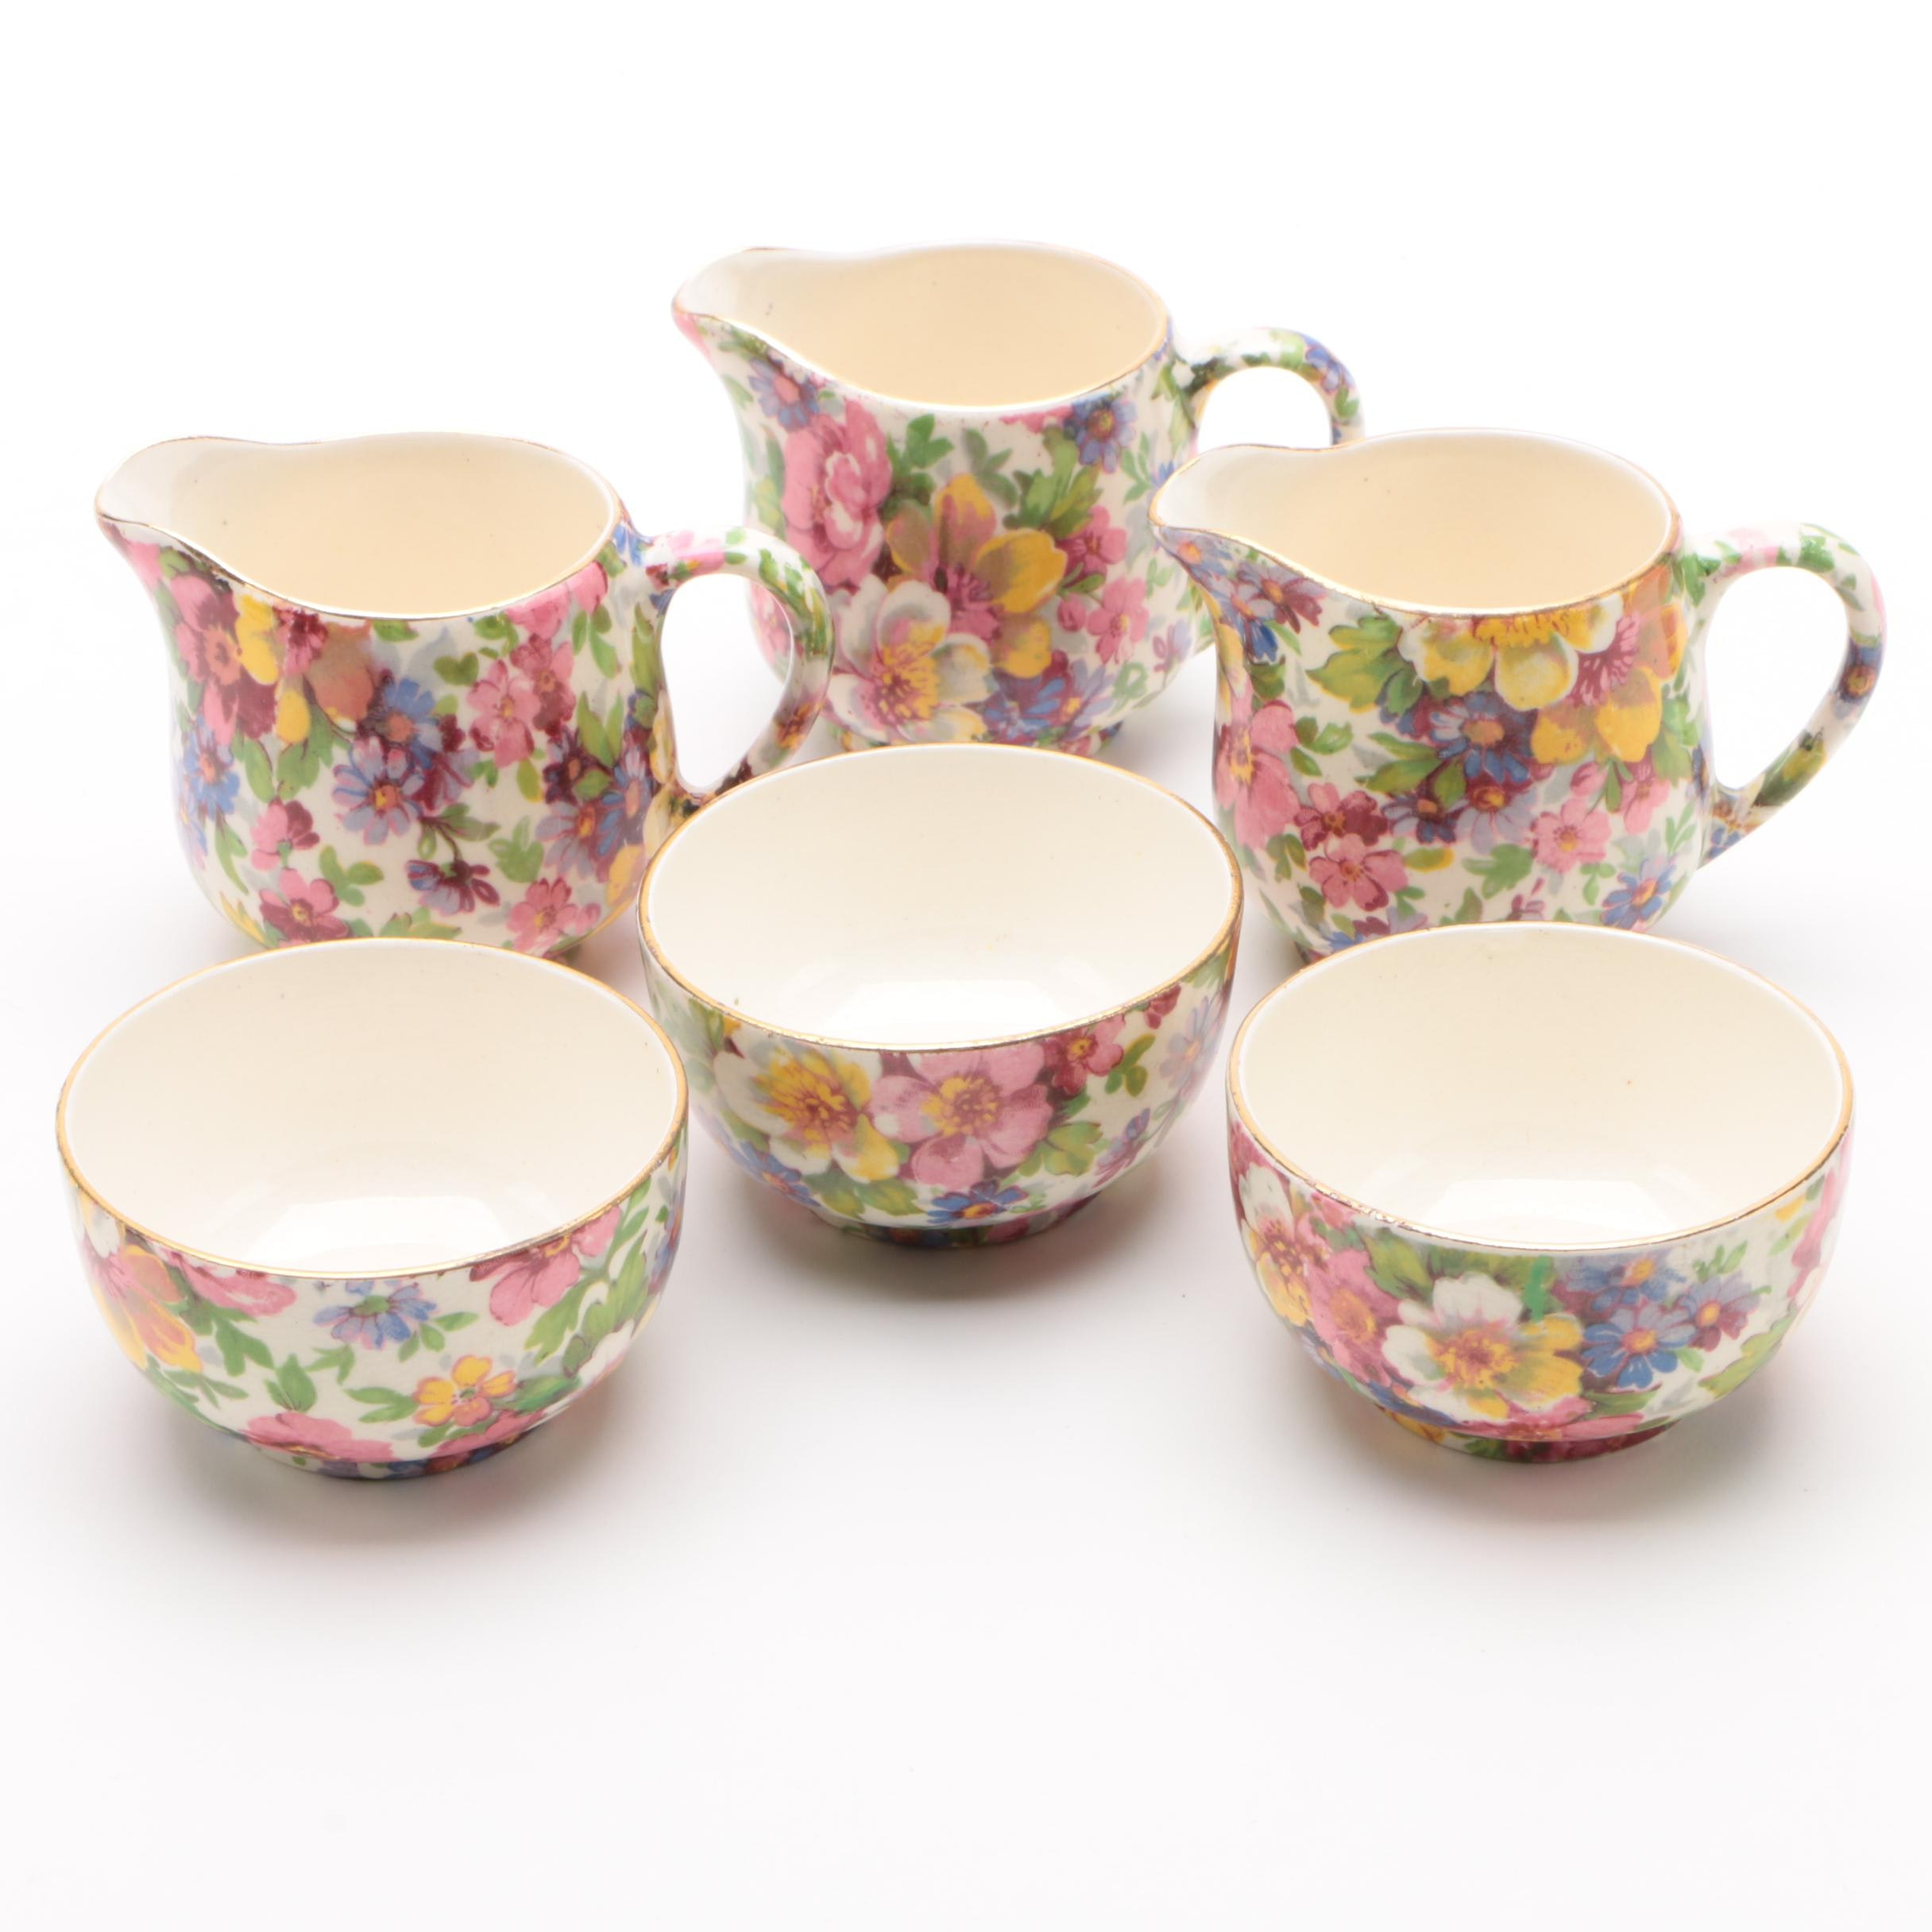 "James Kent ""Du Barry"" Individual Creamers and Open Sugar Bowls"